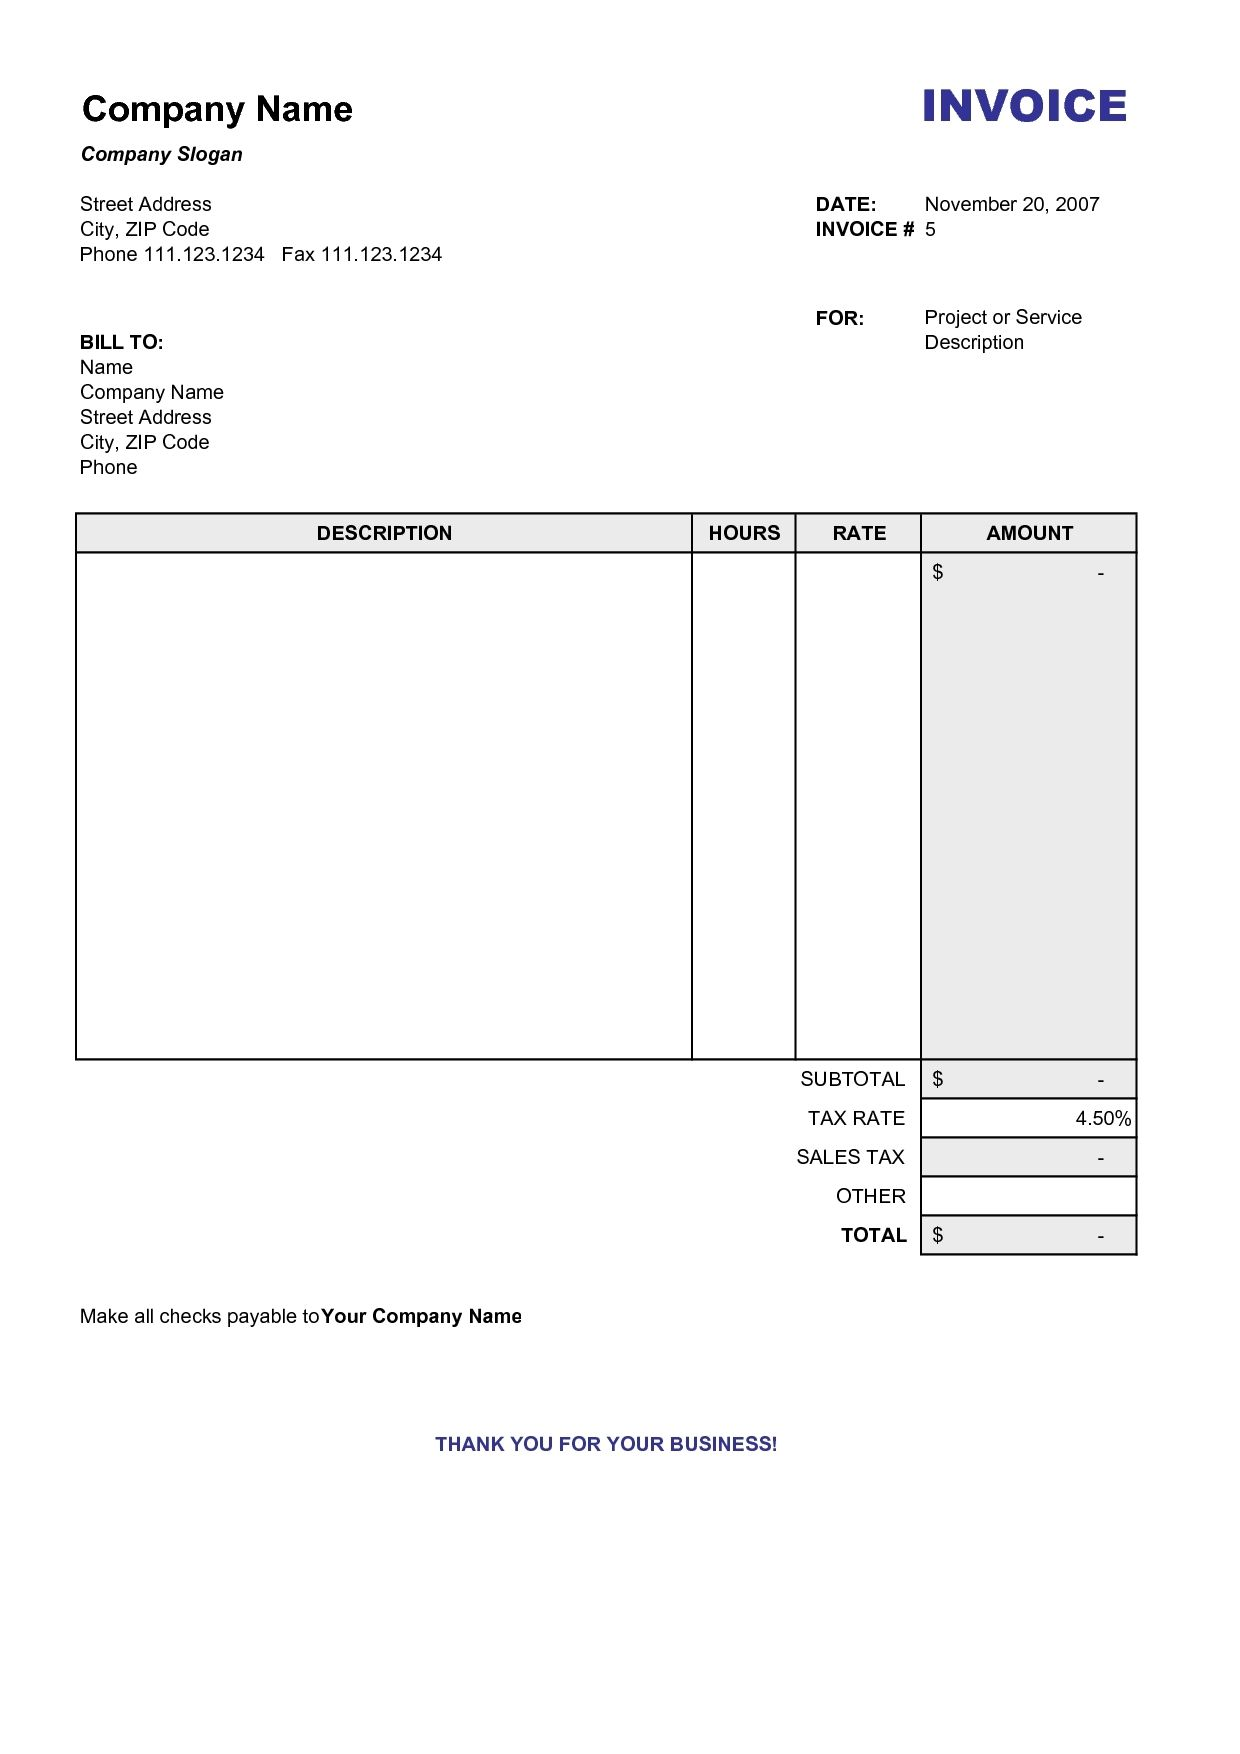 Copy Of A Blank Invoice Invoice Template Free Copy Of Blank - Invoice format in word doc for service business